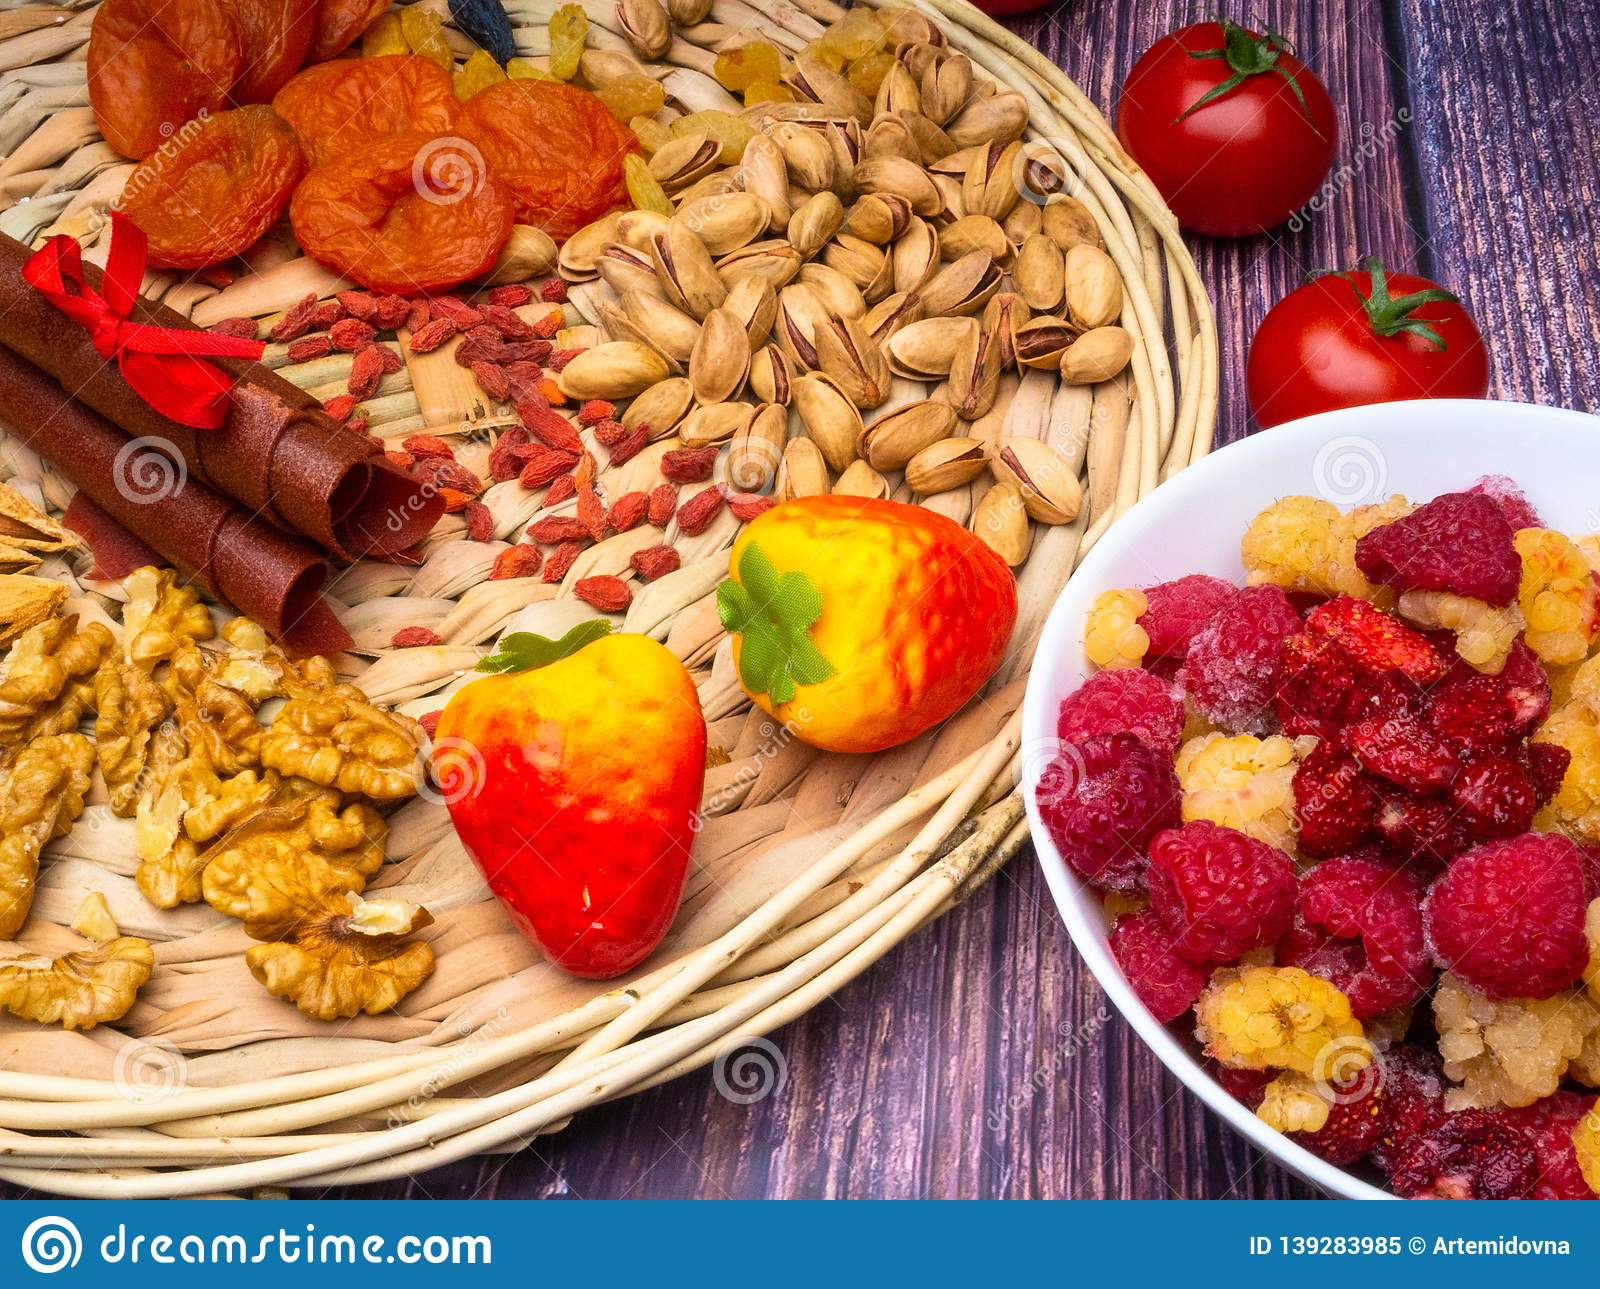 Antioxidants And Resveratrol Rich Food Food For Brain Stock Image Image Of Health Ripe 139283985